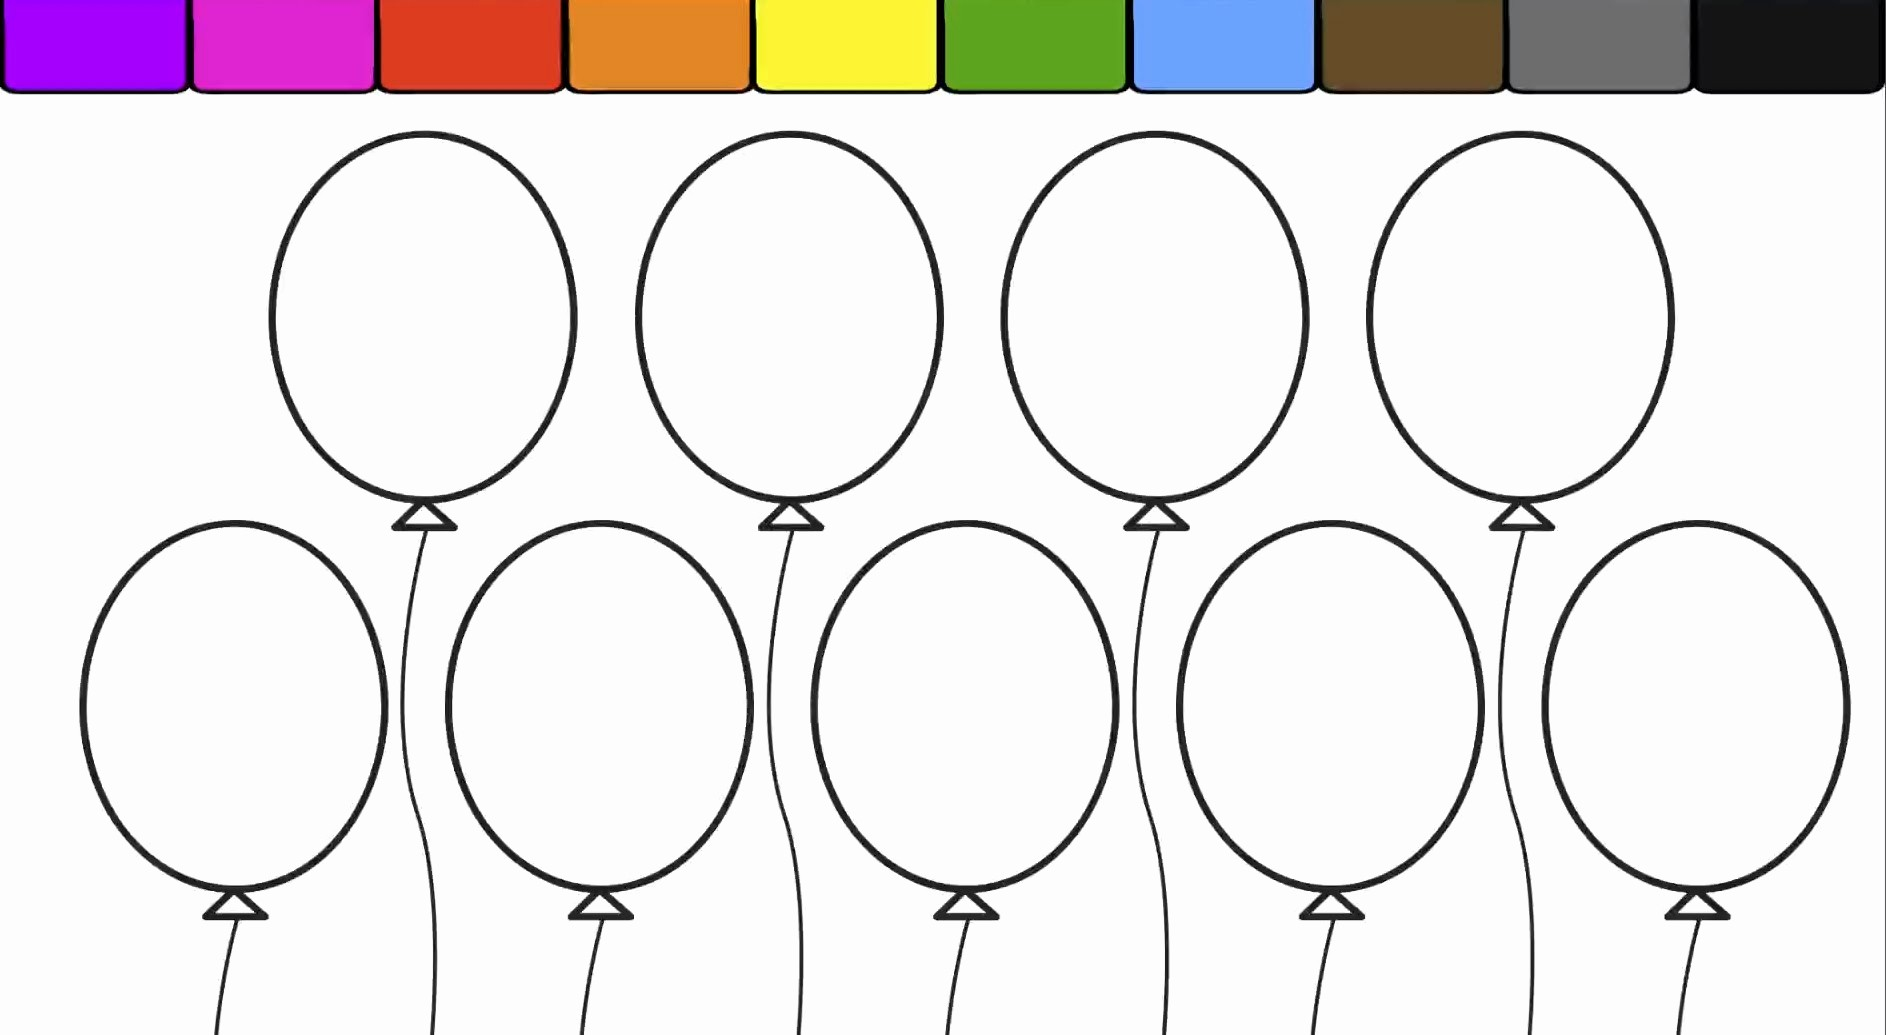 Live Com Sign In Page Beautiful soar Ballon Coloring Page Balloon Pages Paginone Biz